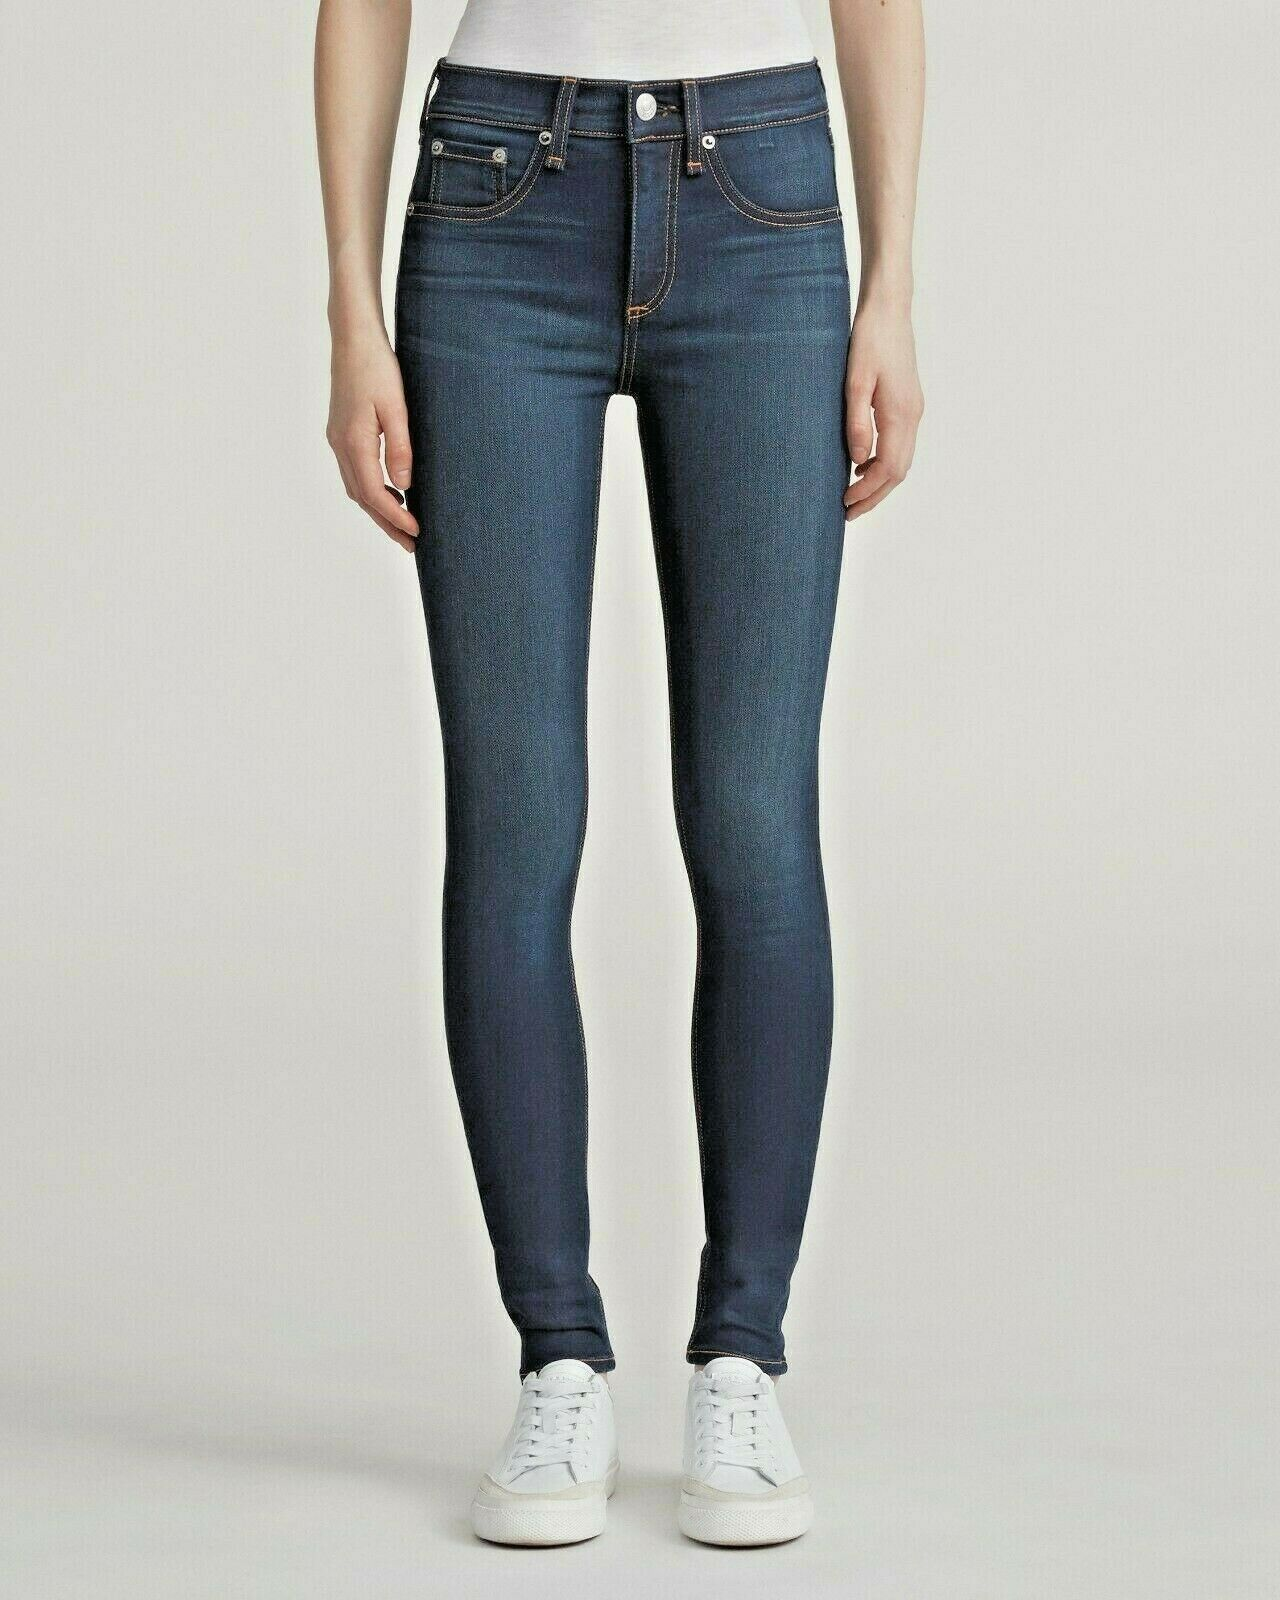 RAG & BONE WOMENS HIGH RISE STRETCH SKINNY JEANS IN BEDFORD 23 NWT